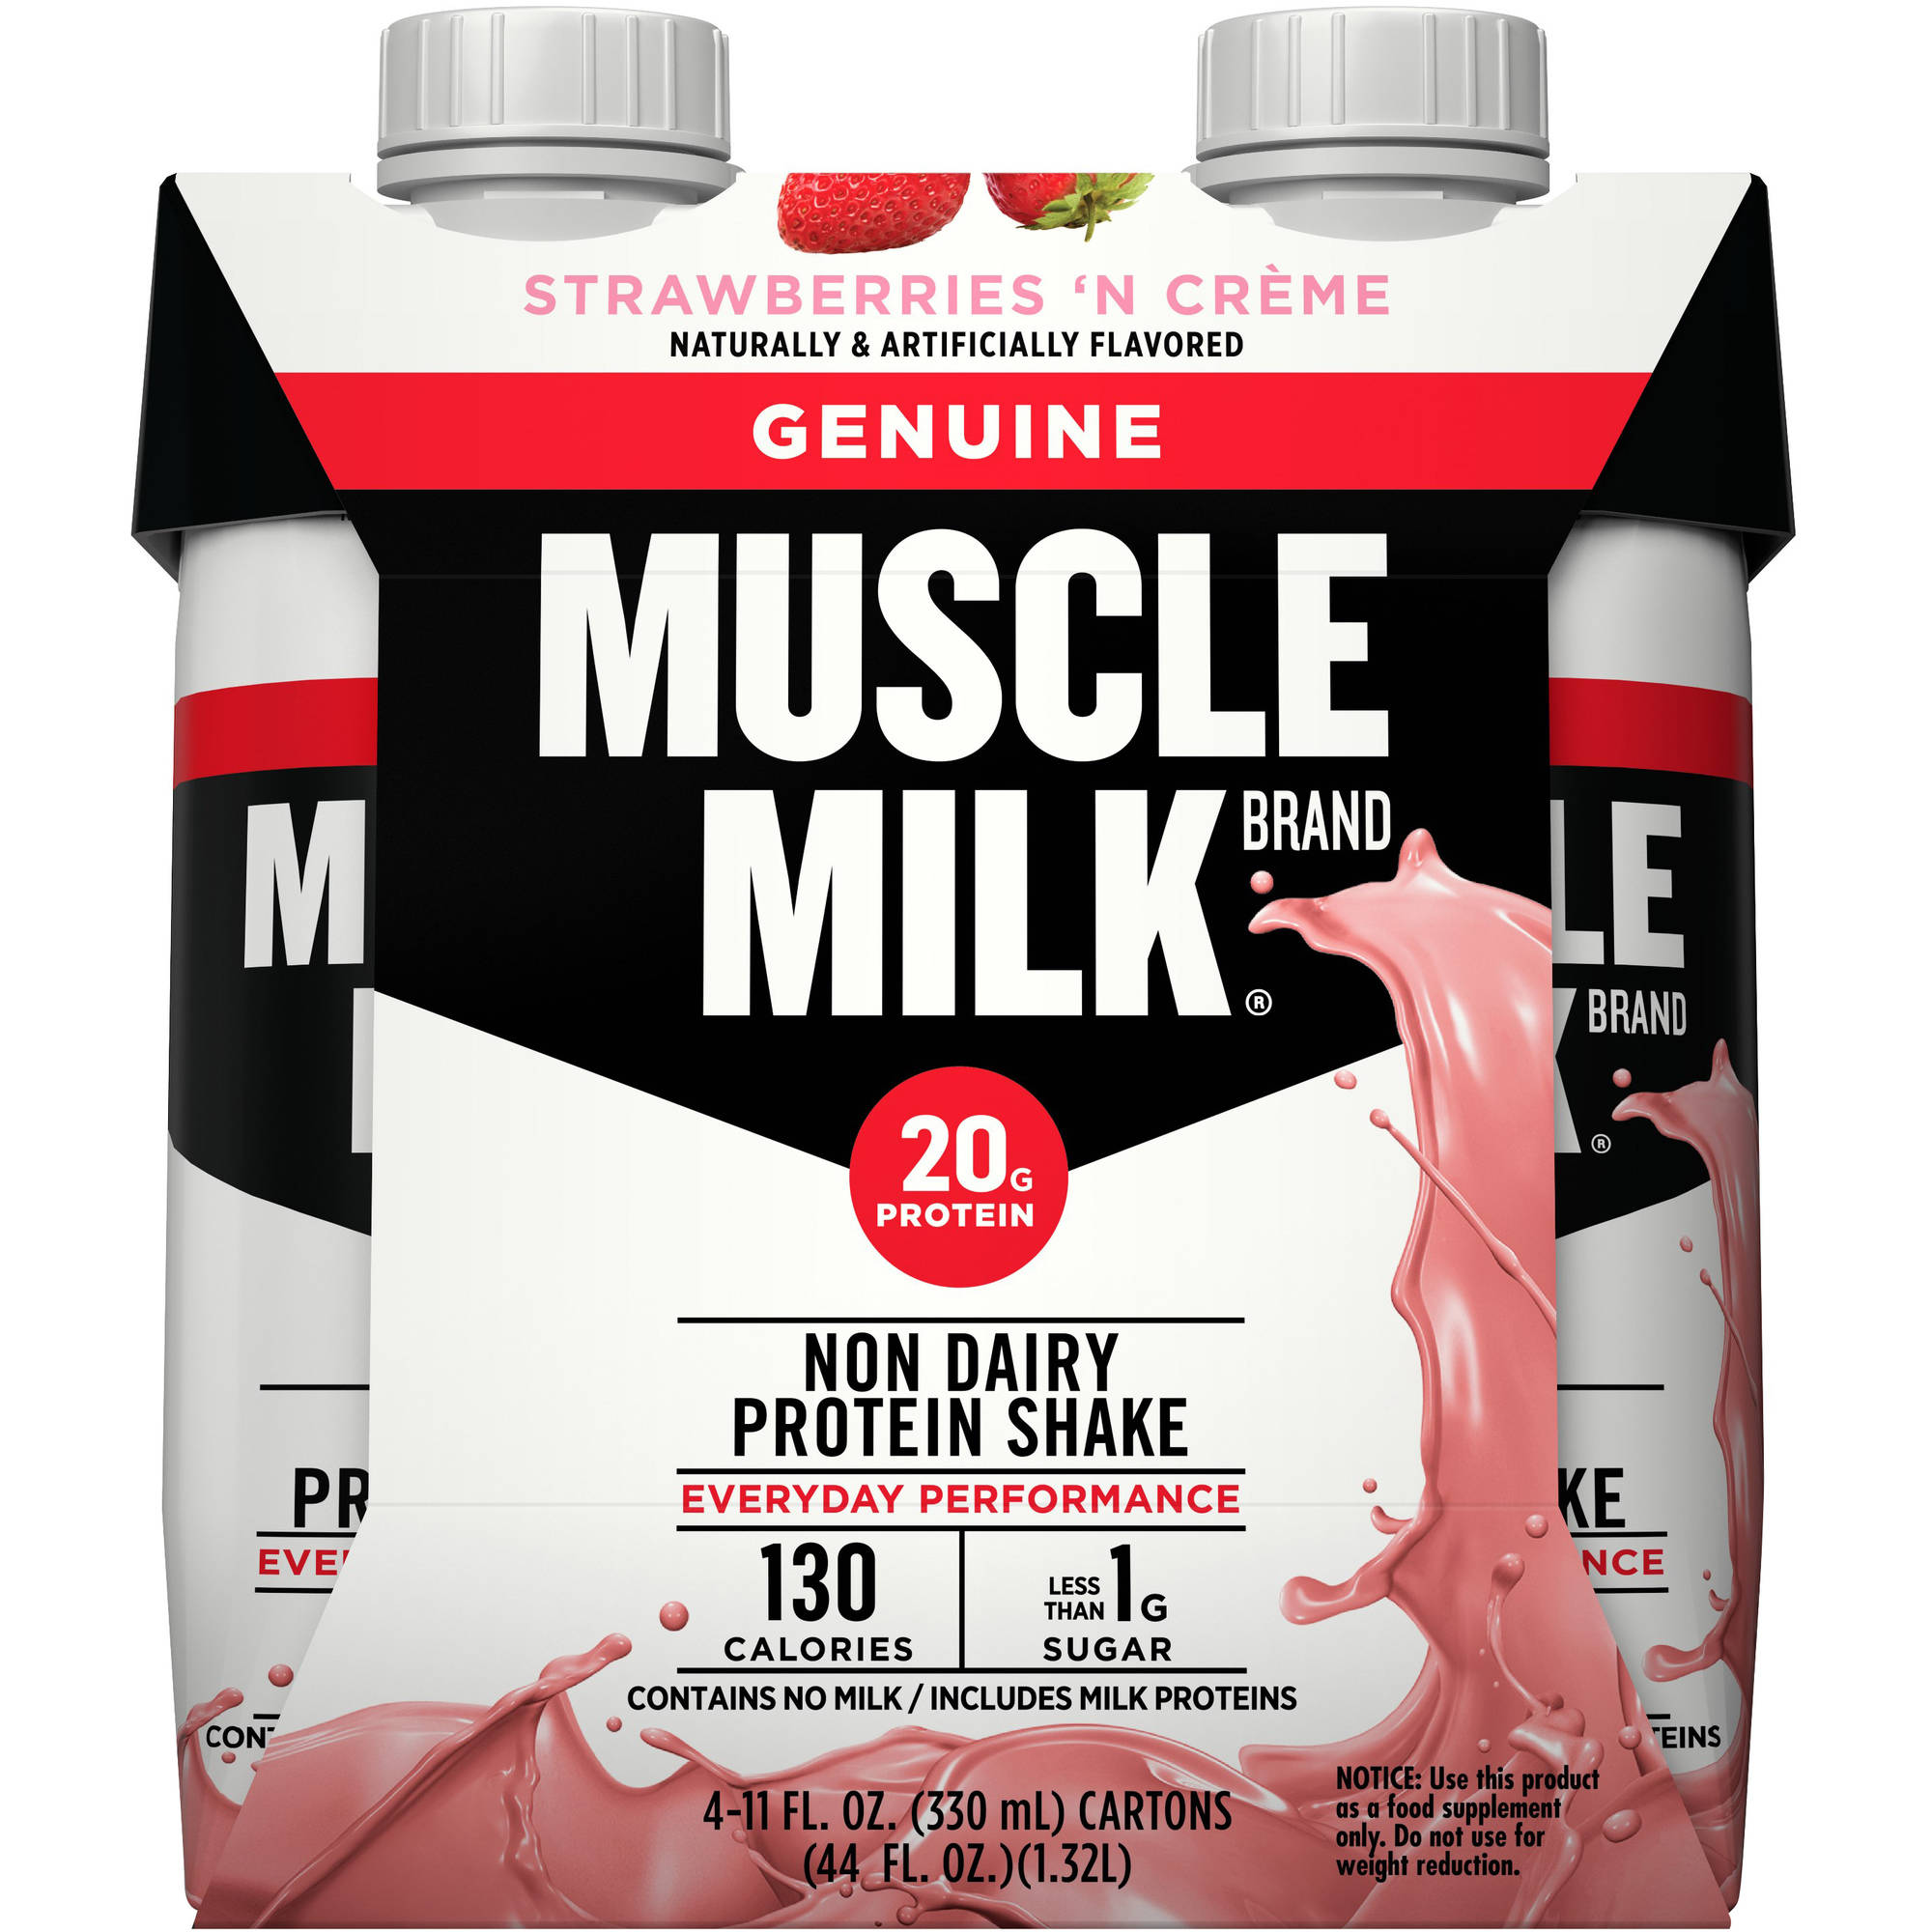 Muscle Milk: Genuine Strawberries 'n Creme Muscle Milk Nutritional Shake, 22 Oz